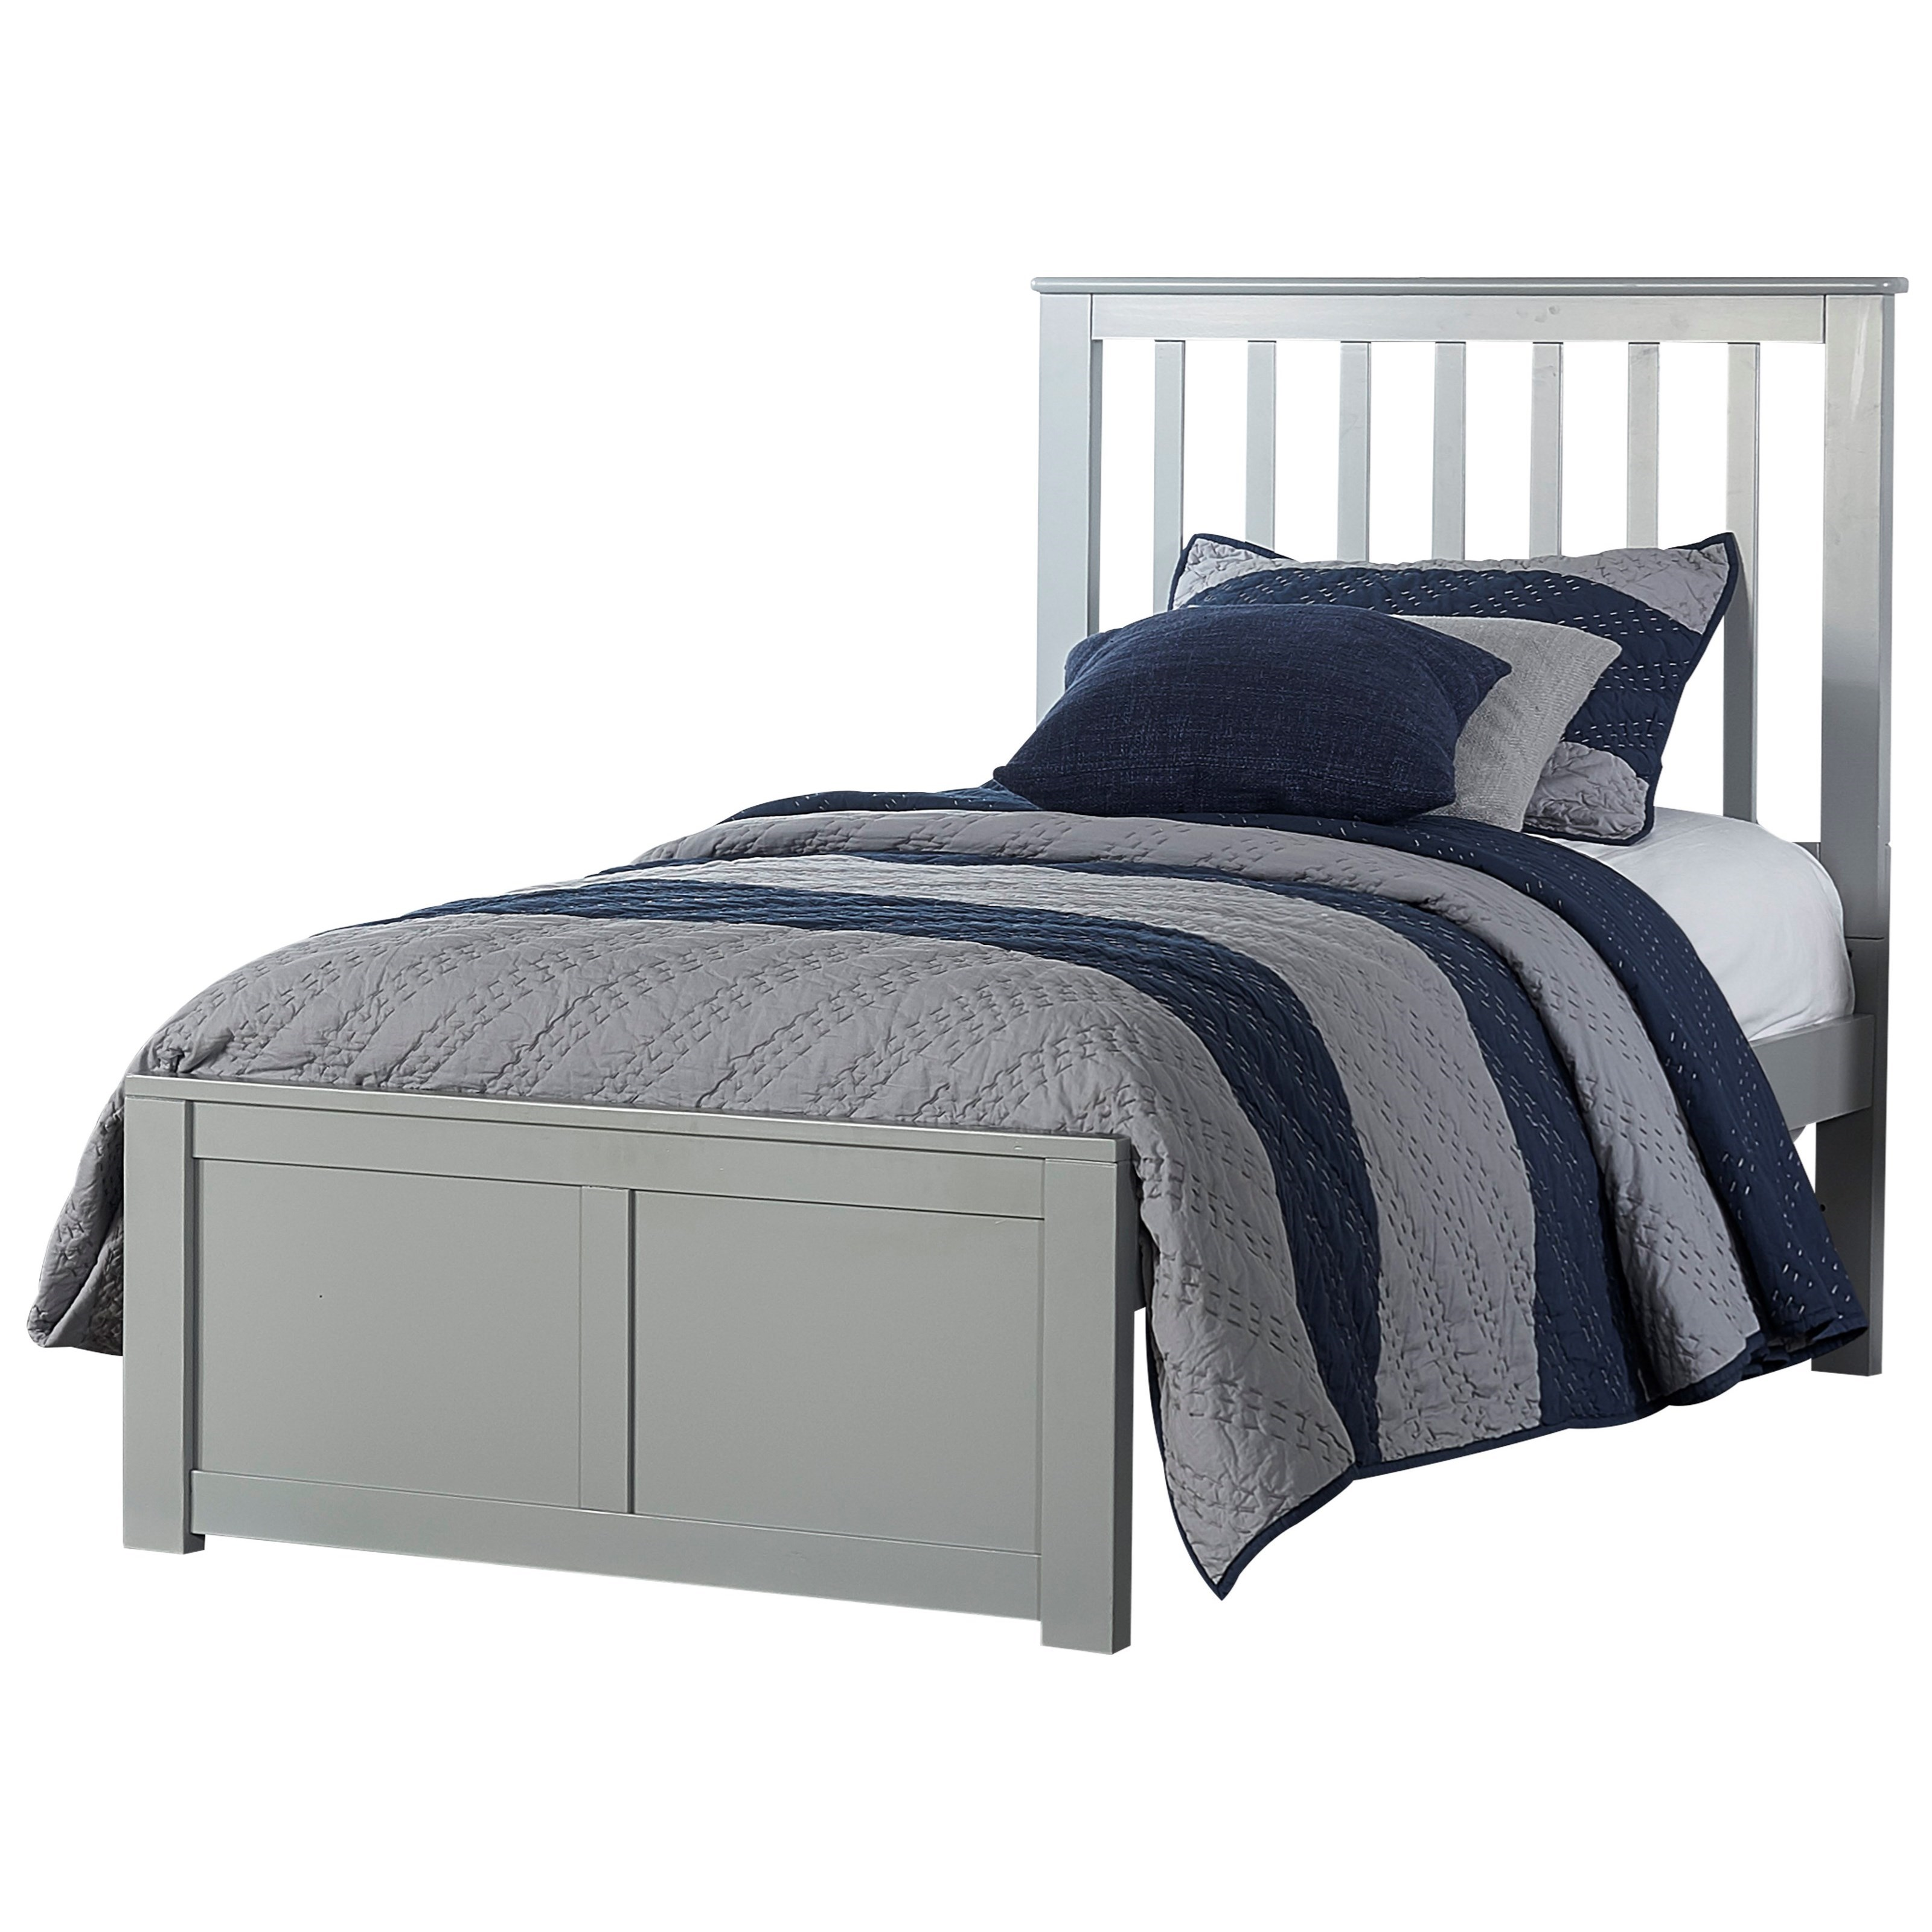 Schoolhouse 4.0 Twin Mission Bed by NE Kids at Darvin Furniture